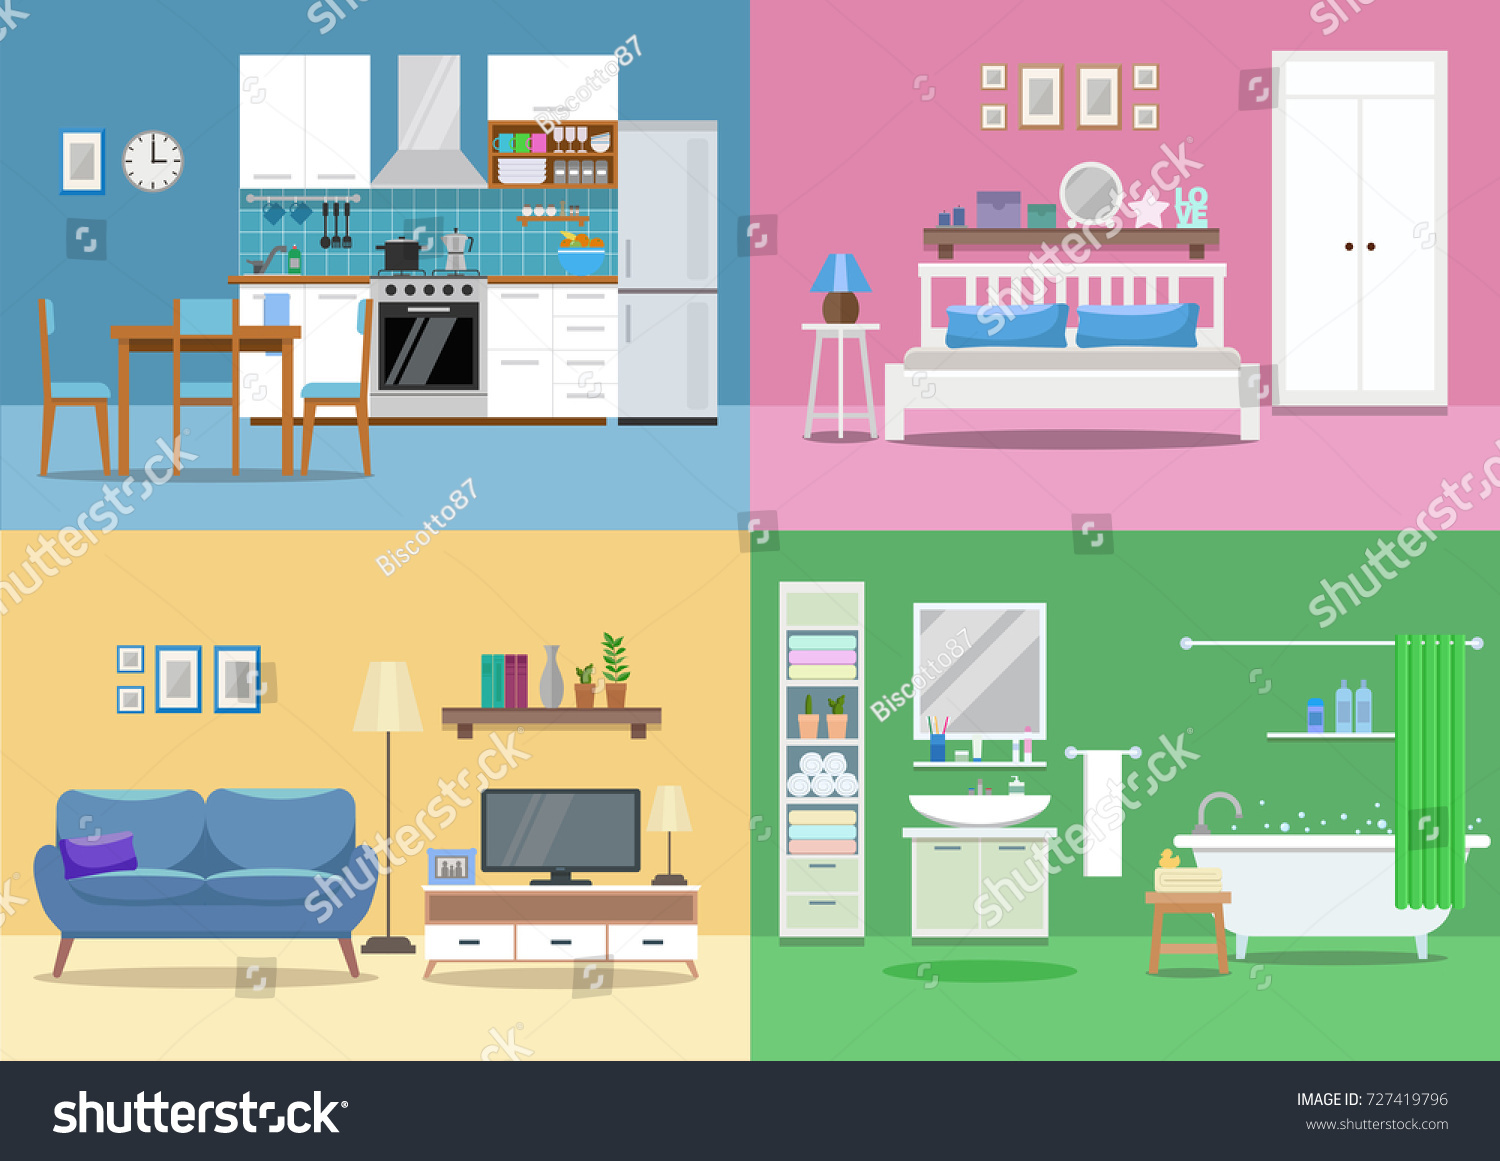 living room bedroom bathroom kitchen house interior kitchen living room bedroom stock vector 18975